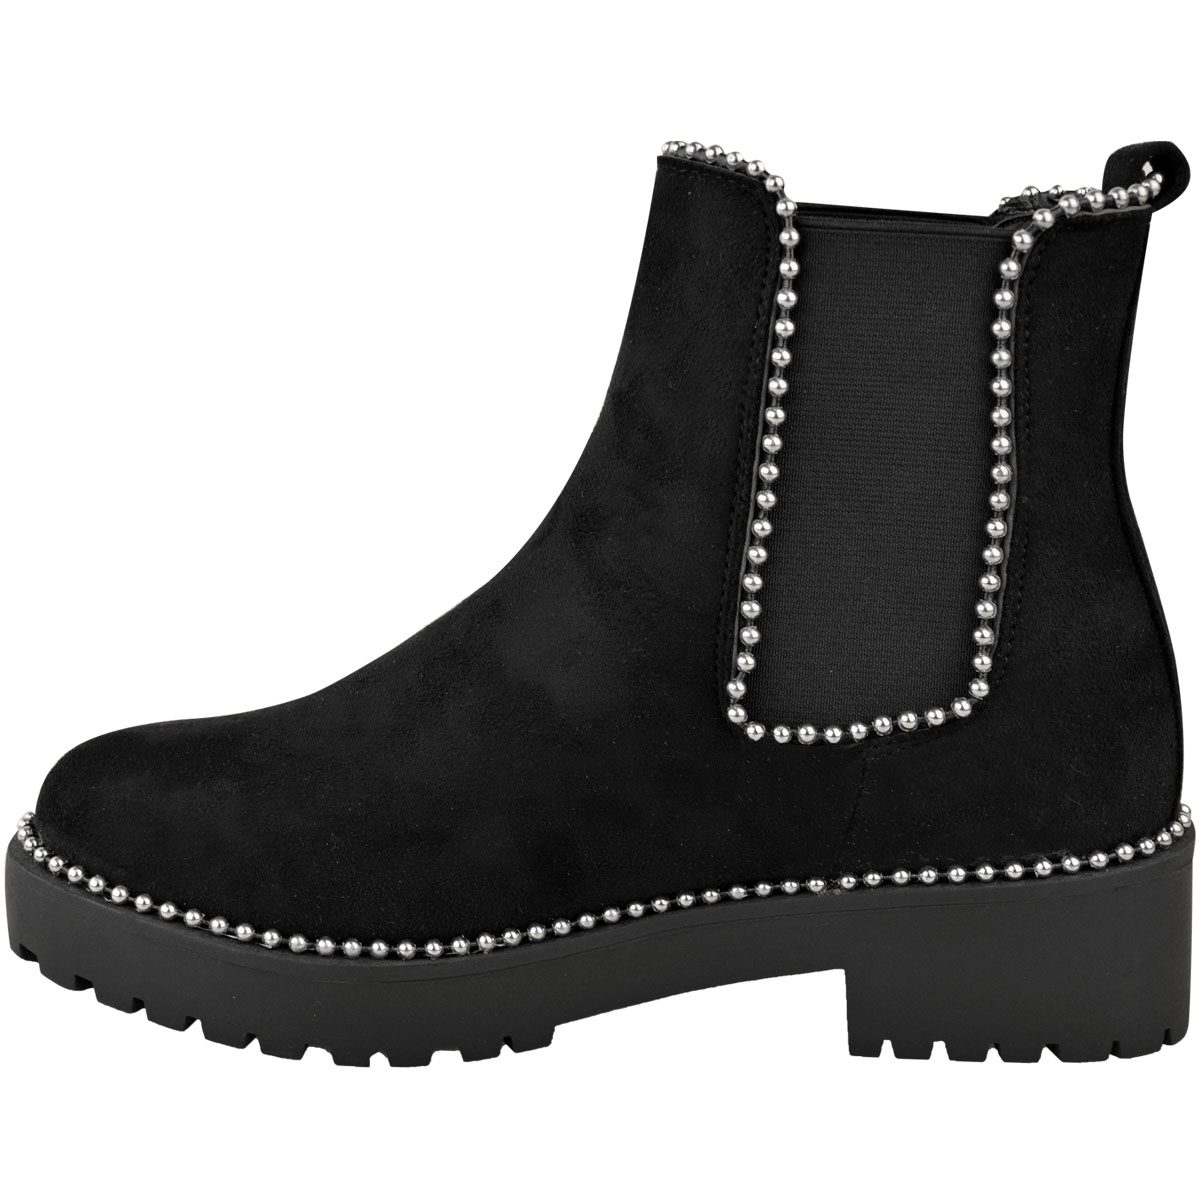 thumbnail 17 - Womens Ankle Chelsea Boots Beaded Studded Elastic Stretch Winter Shoes Size New